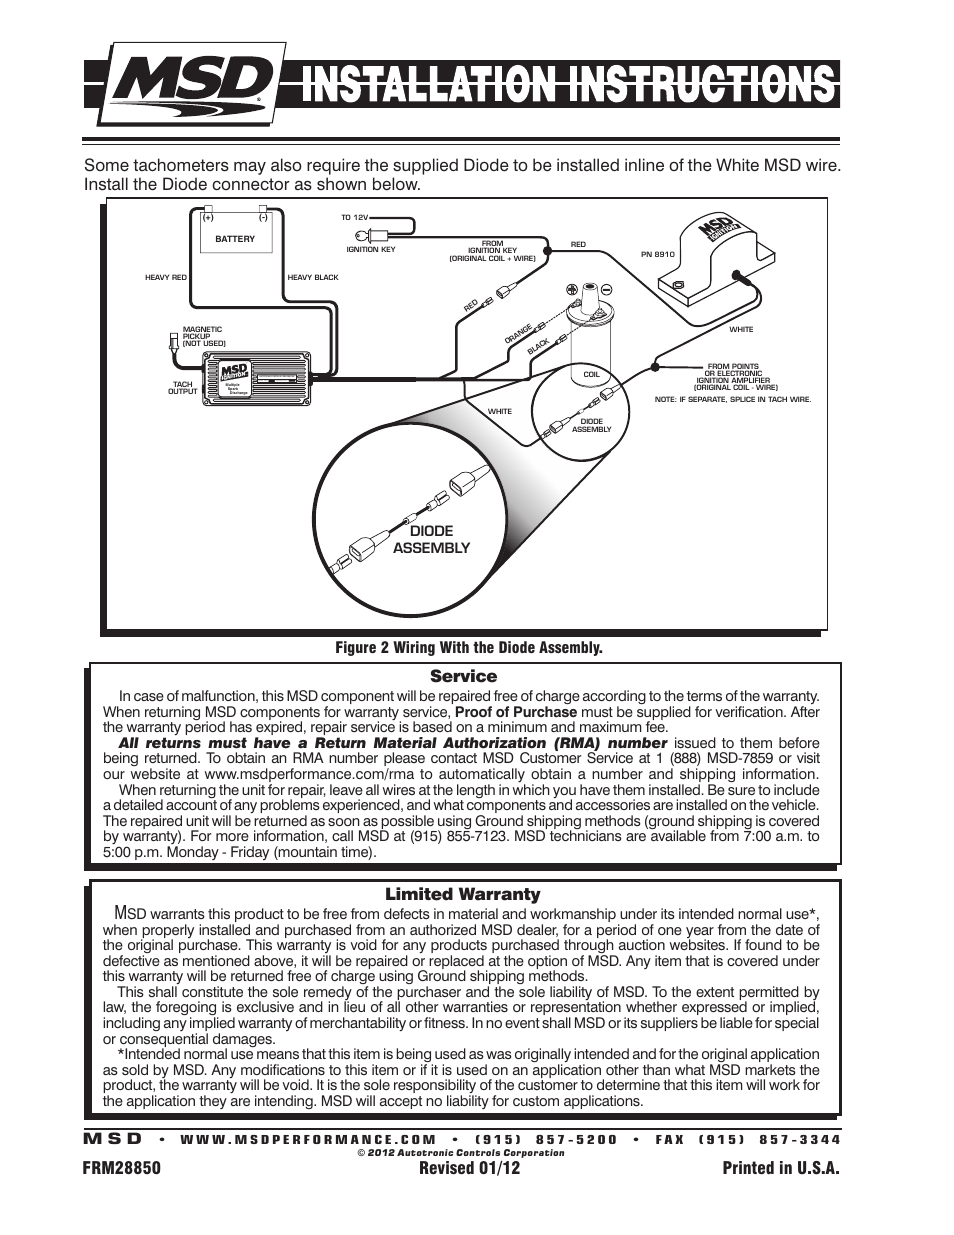 medium resolution of limited warranty service figure 2 wiring with the diode assembly msd 8910 tach adapter installation user manual page 2 2